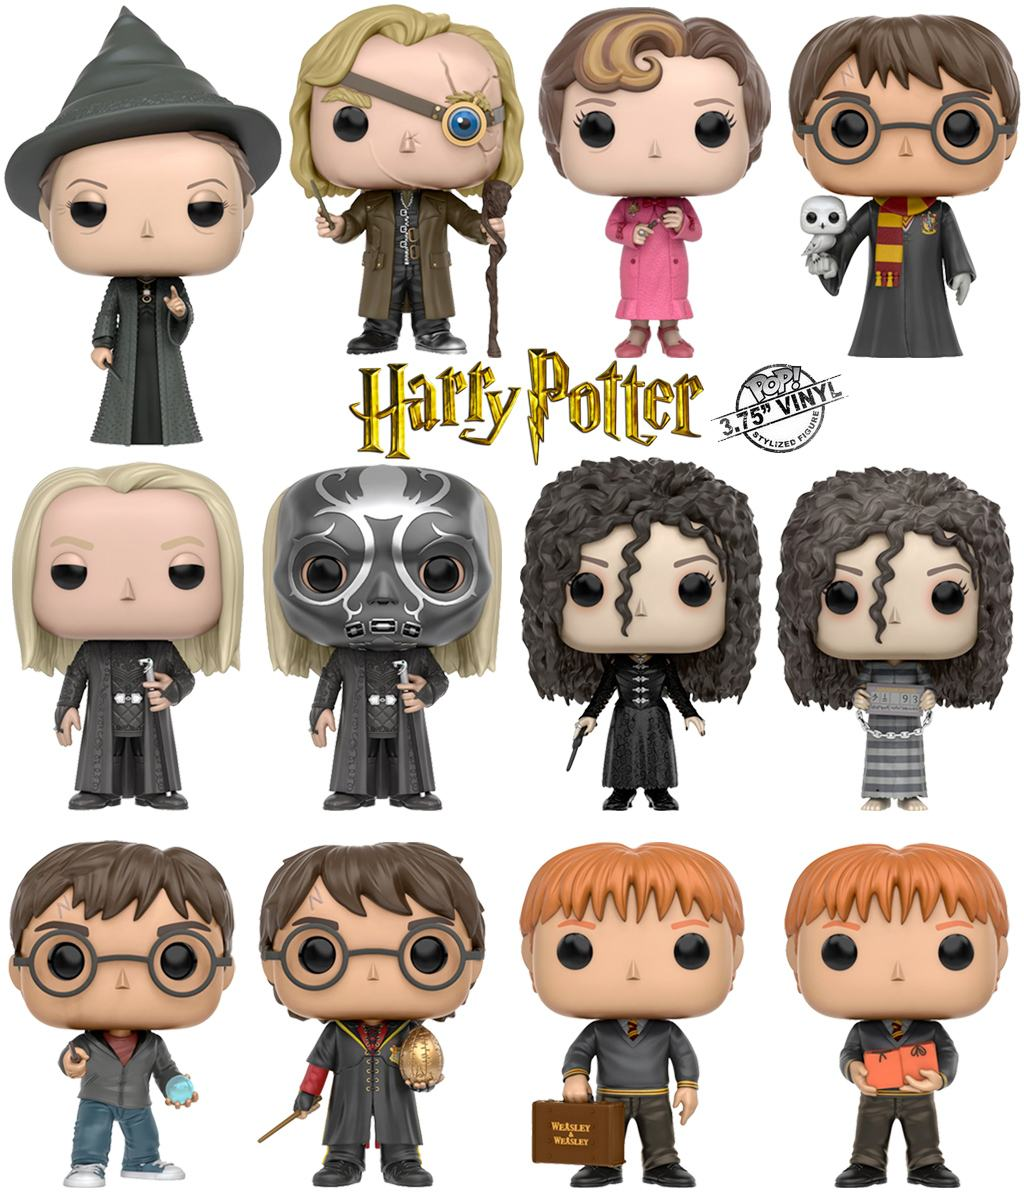 bonecos-harry-potter-pop-serie-3-funko-01a